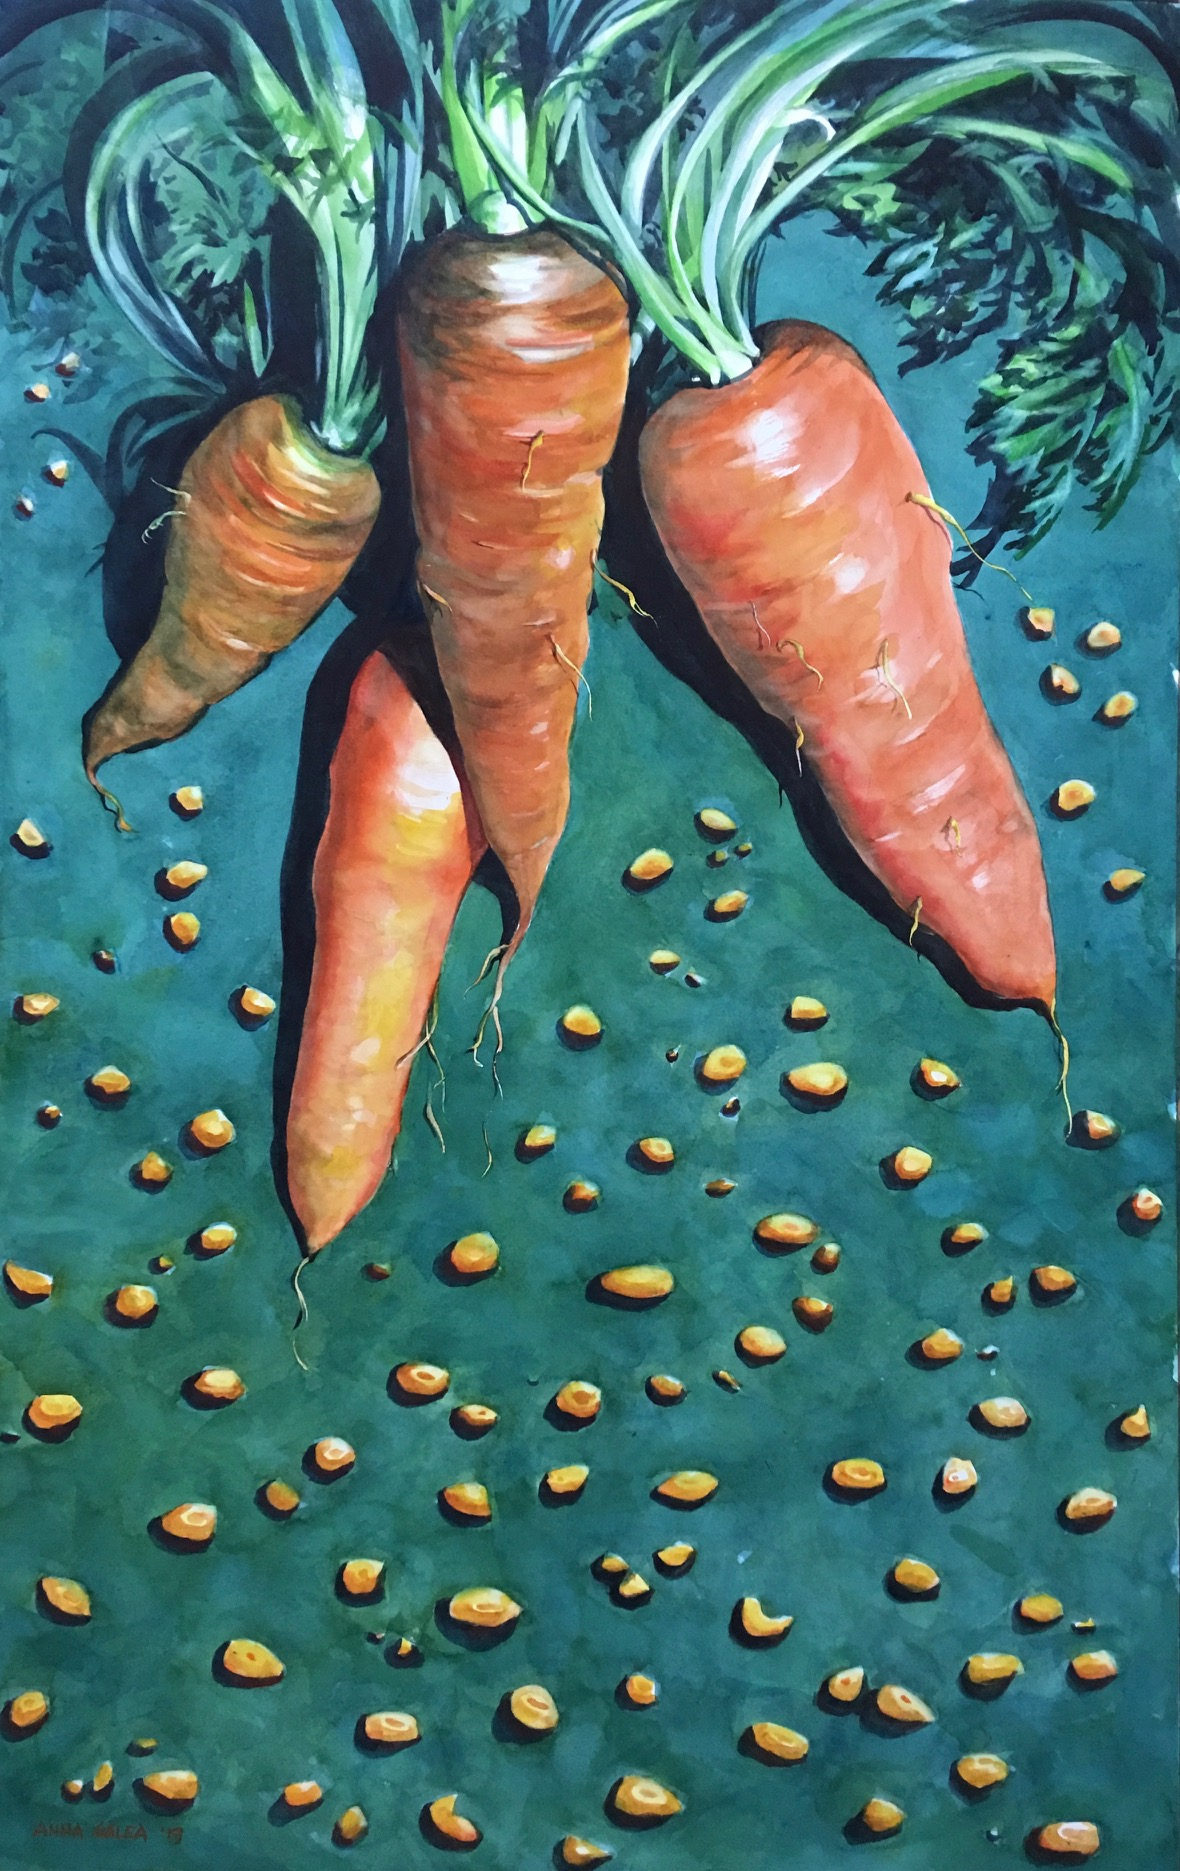 'Dangling Carrots', 2019, Watercolour, 98x62cm, Anna Galea